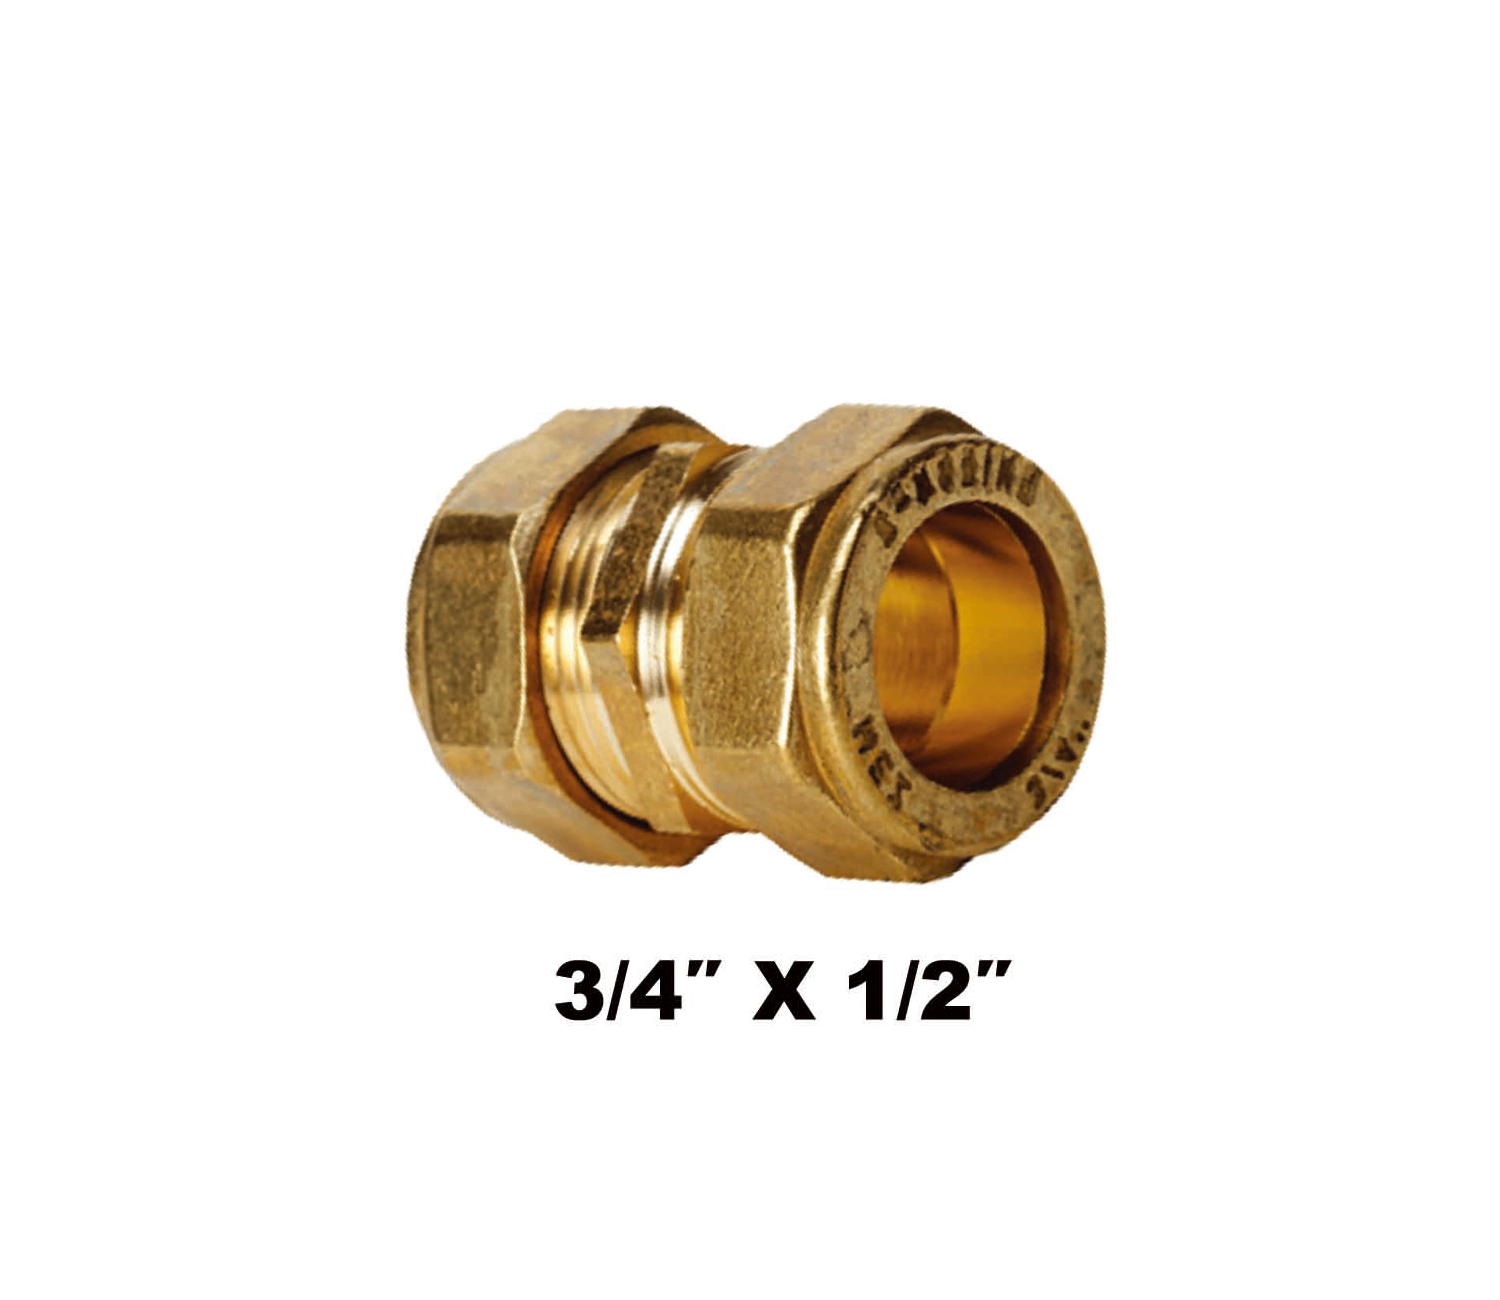 "Straight Compression Coupler C X C 3/4″ X 1/2"" (31021)"